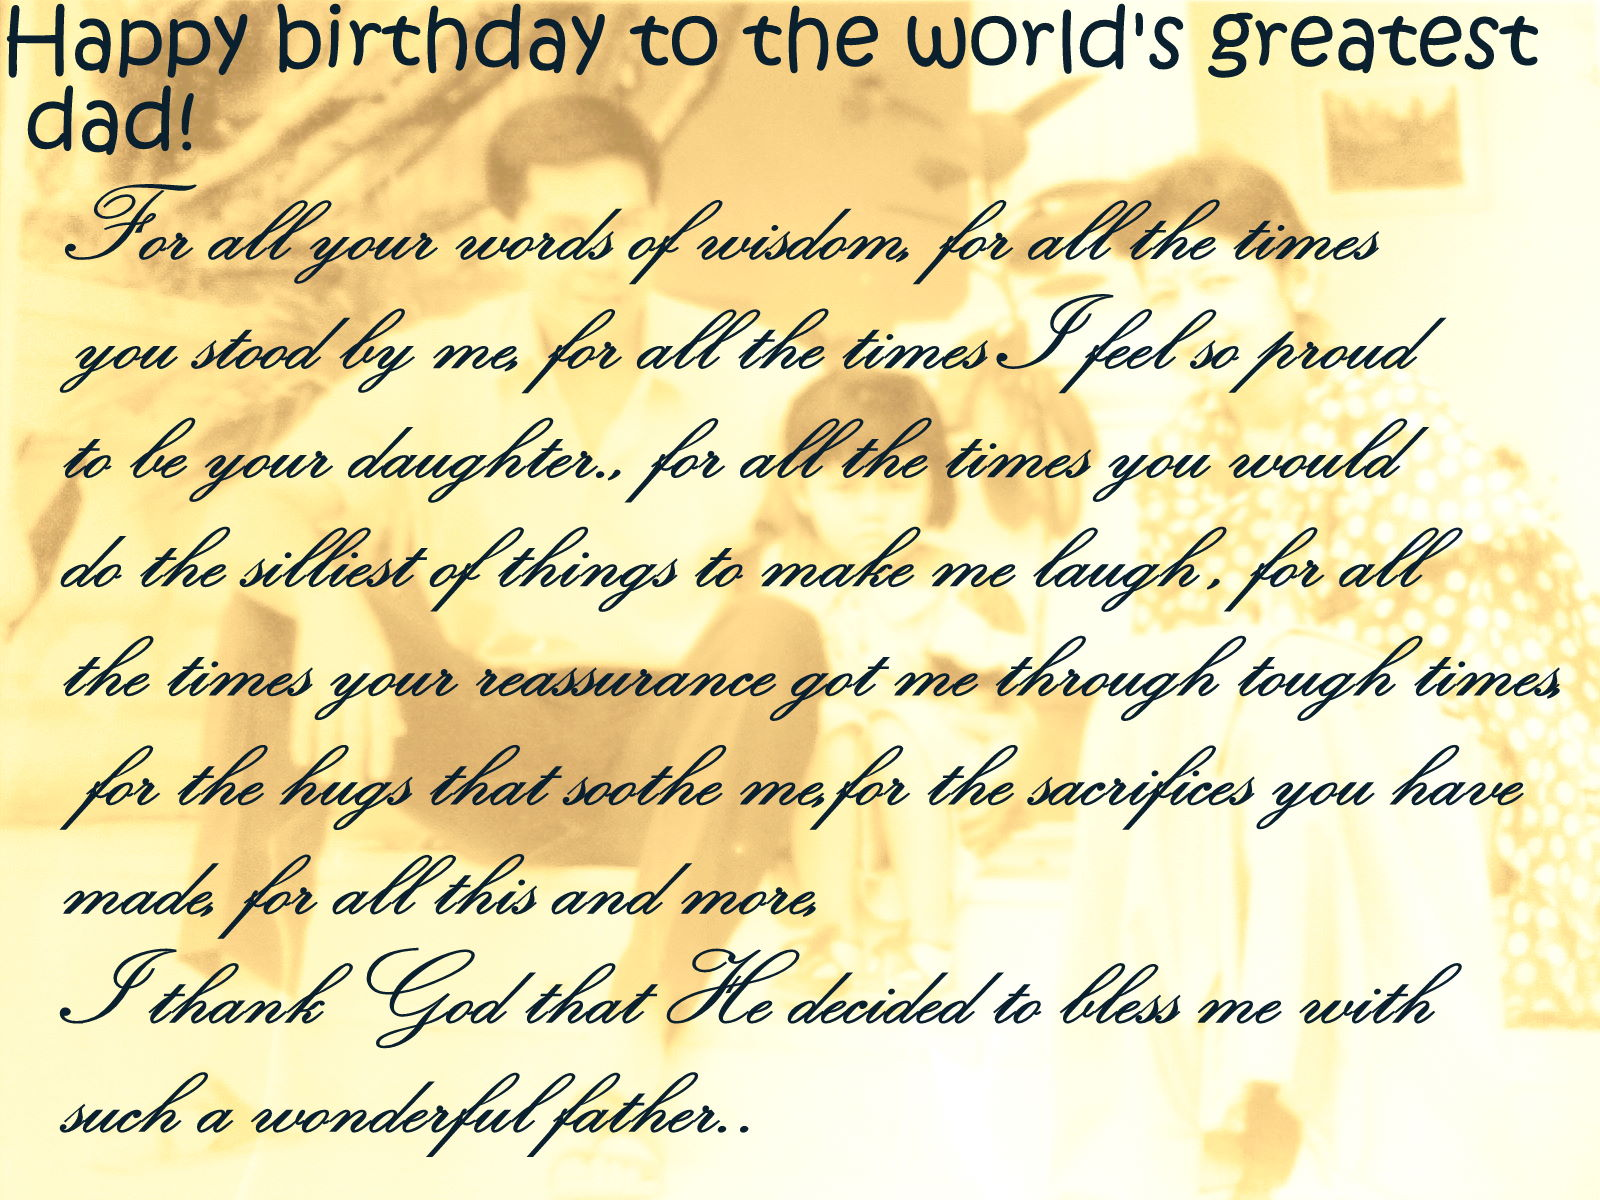 Birthday wishes for dad can i do but wish him a wonderful birthday and hope he always has reasons to smile memories to cherish happy birthday pa birthday wishes for dad m4hsunfo